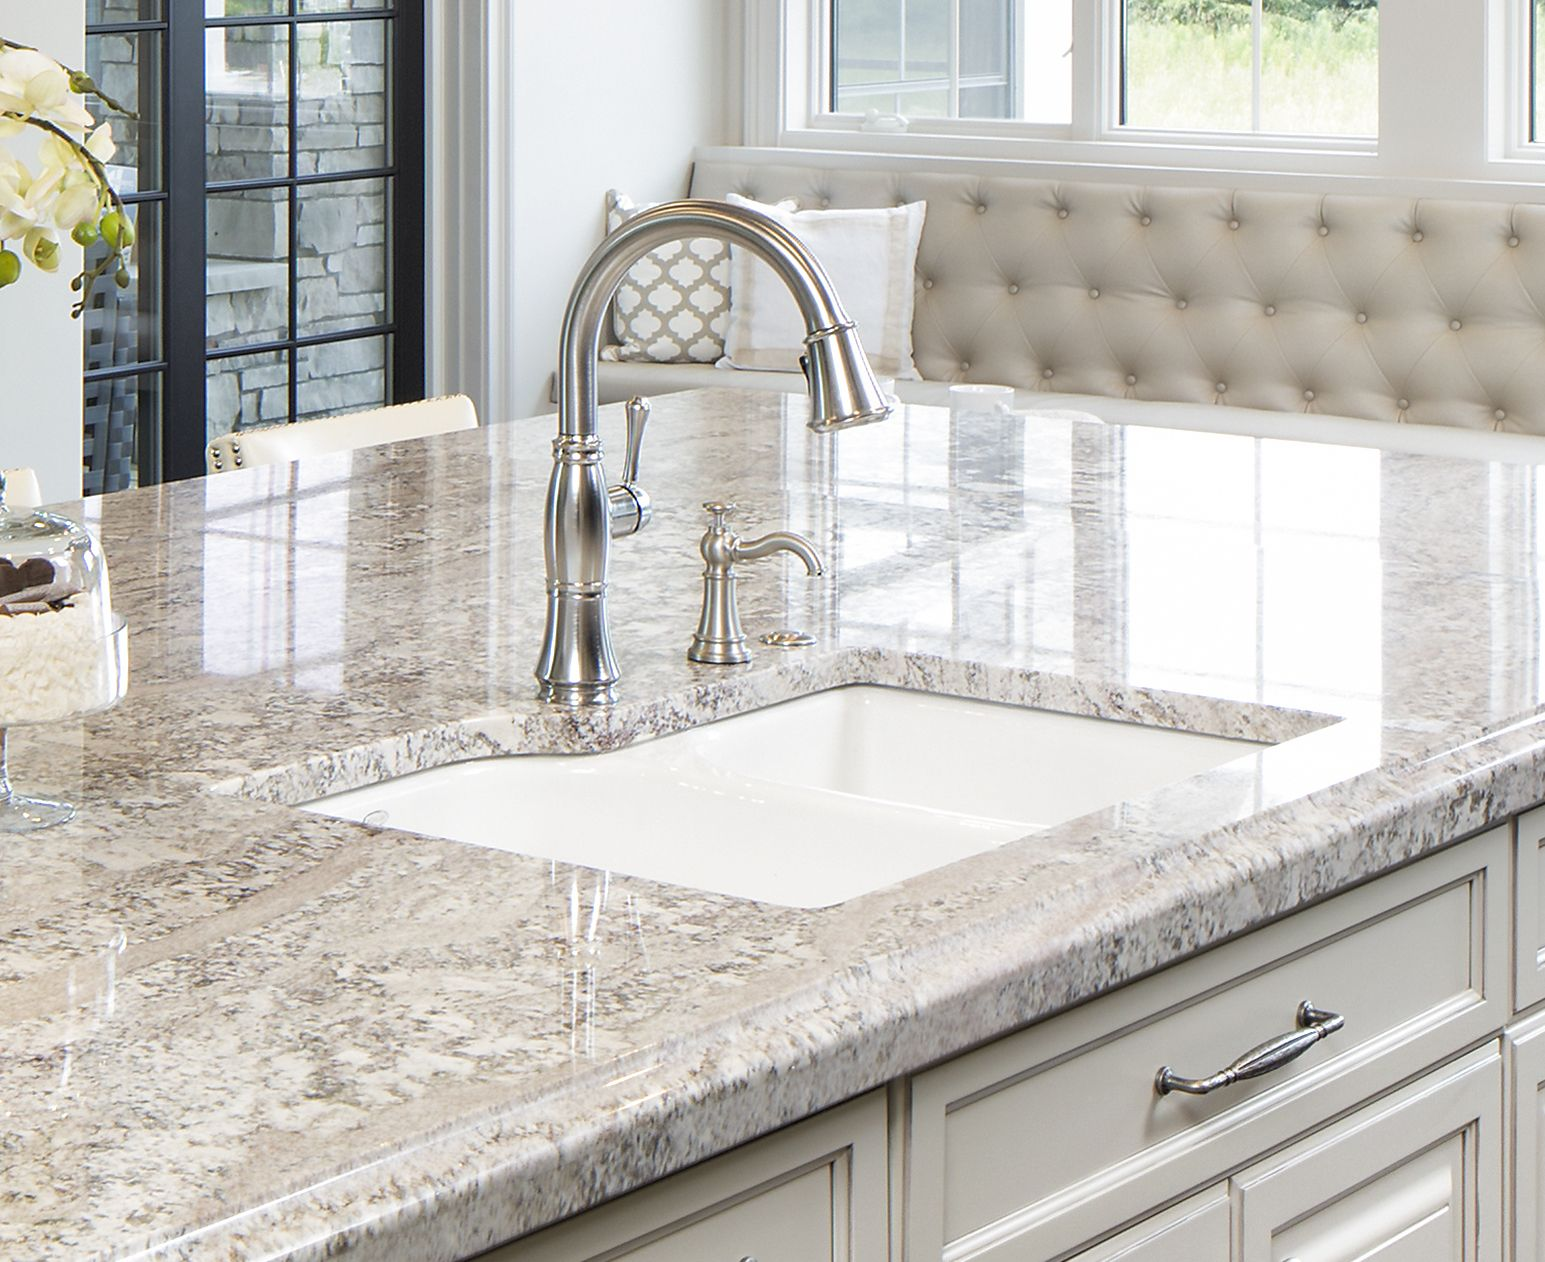 Kitchen Planning Which Sink Is Suitable For A Granite Countertop In 2020 Grey Granite Countertops Granite Countertops Colors White Granite Countertops